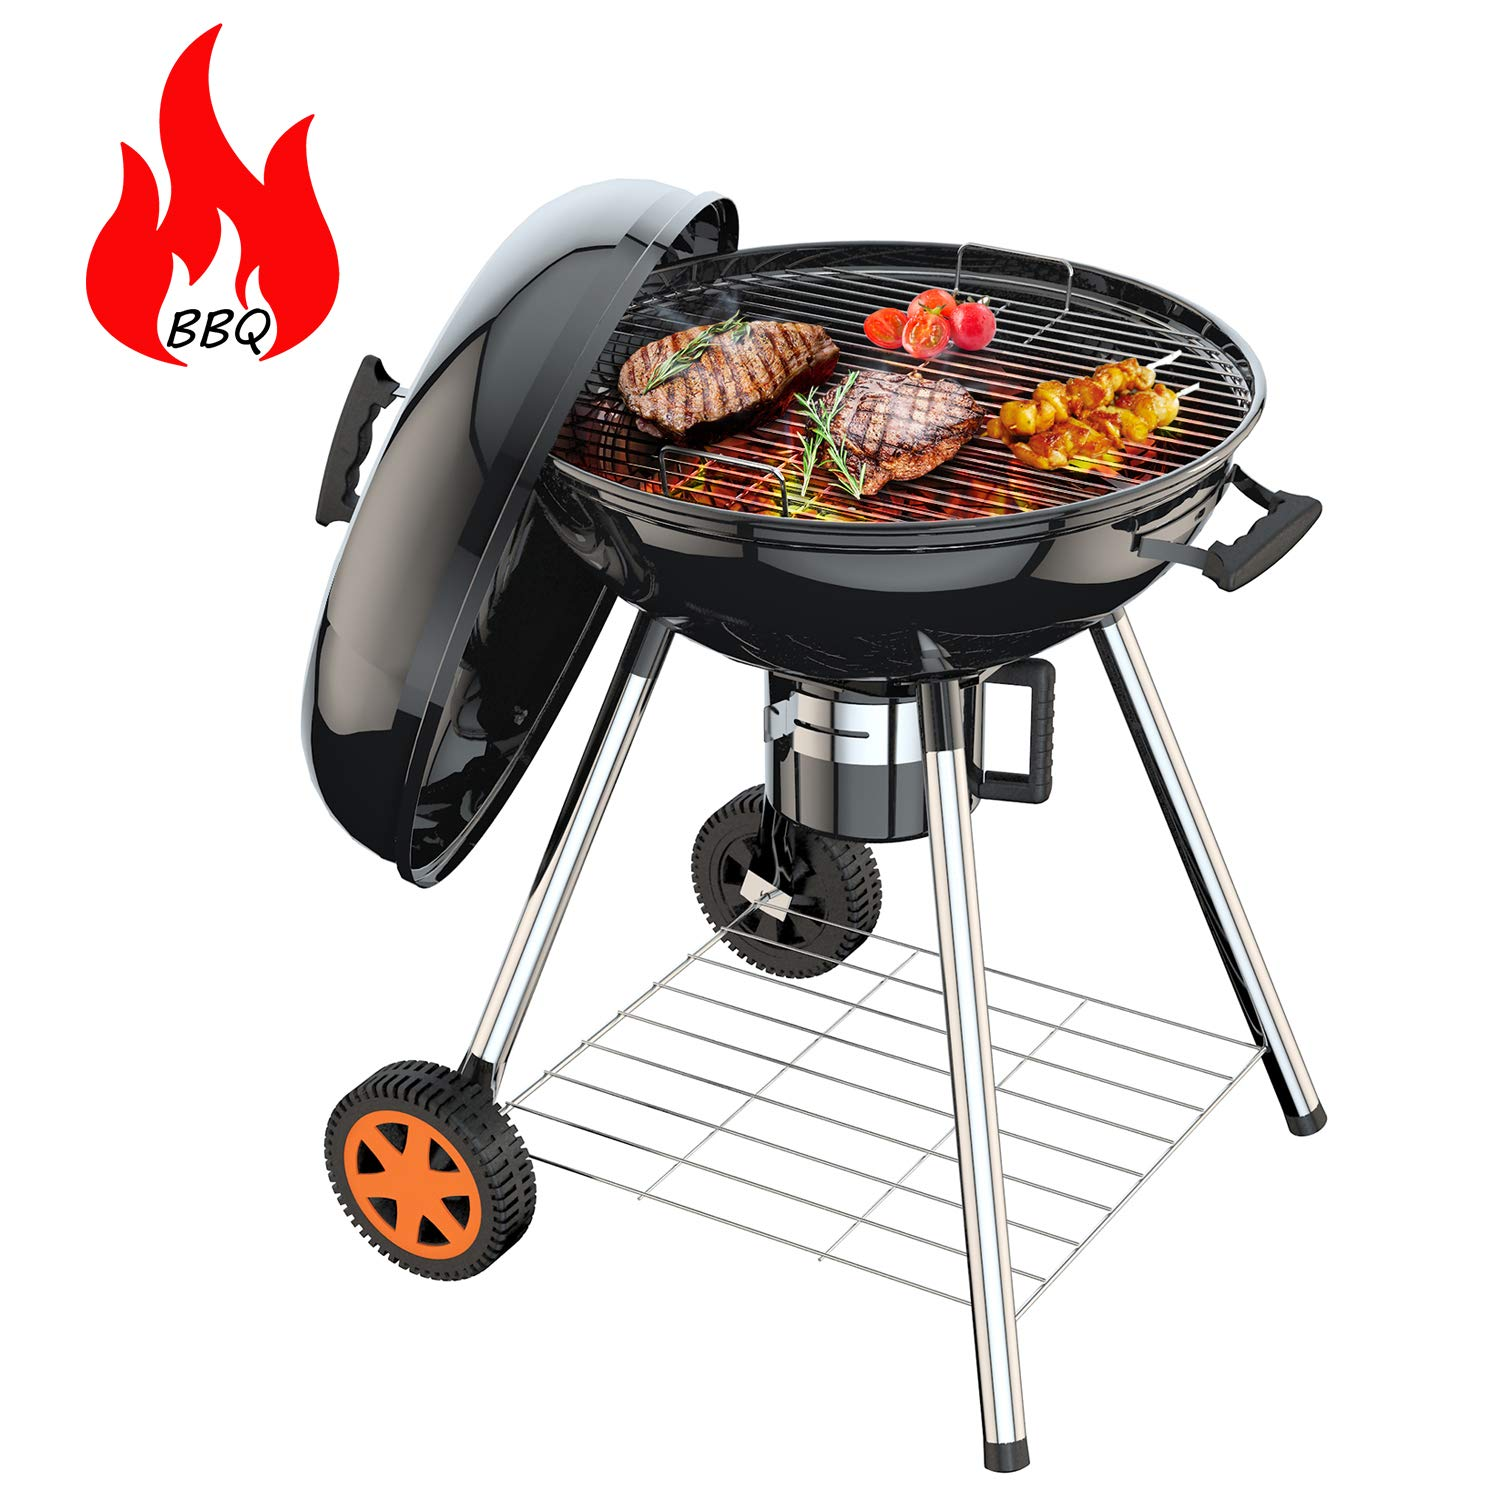 TACKLIFE Charcoal Barbecue Grill, CG02A, 22.5-Inch Charcoal Grill, BBQ Grill with Lid, 23.6-Inch High, Outdoor for Camping by TACKLIFE